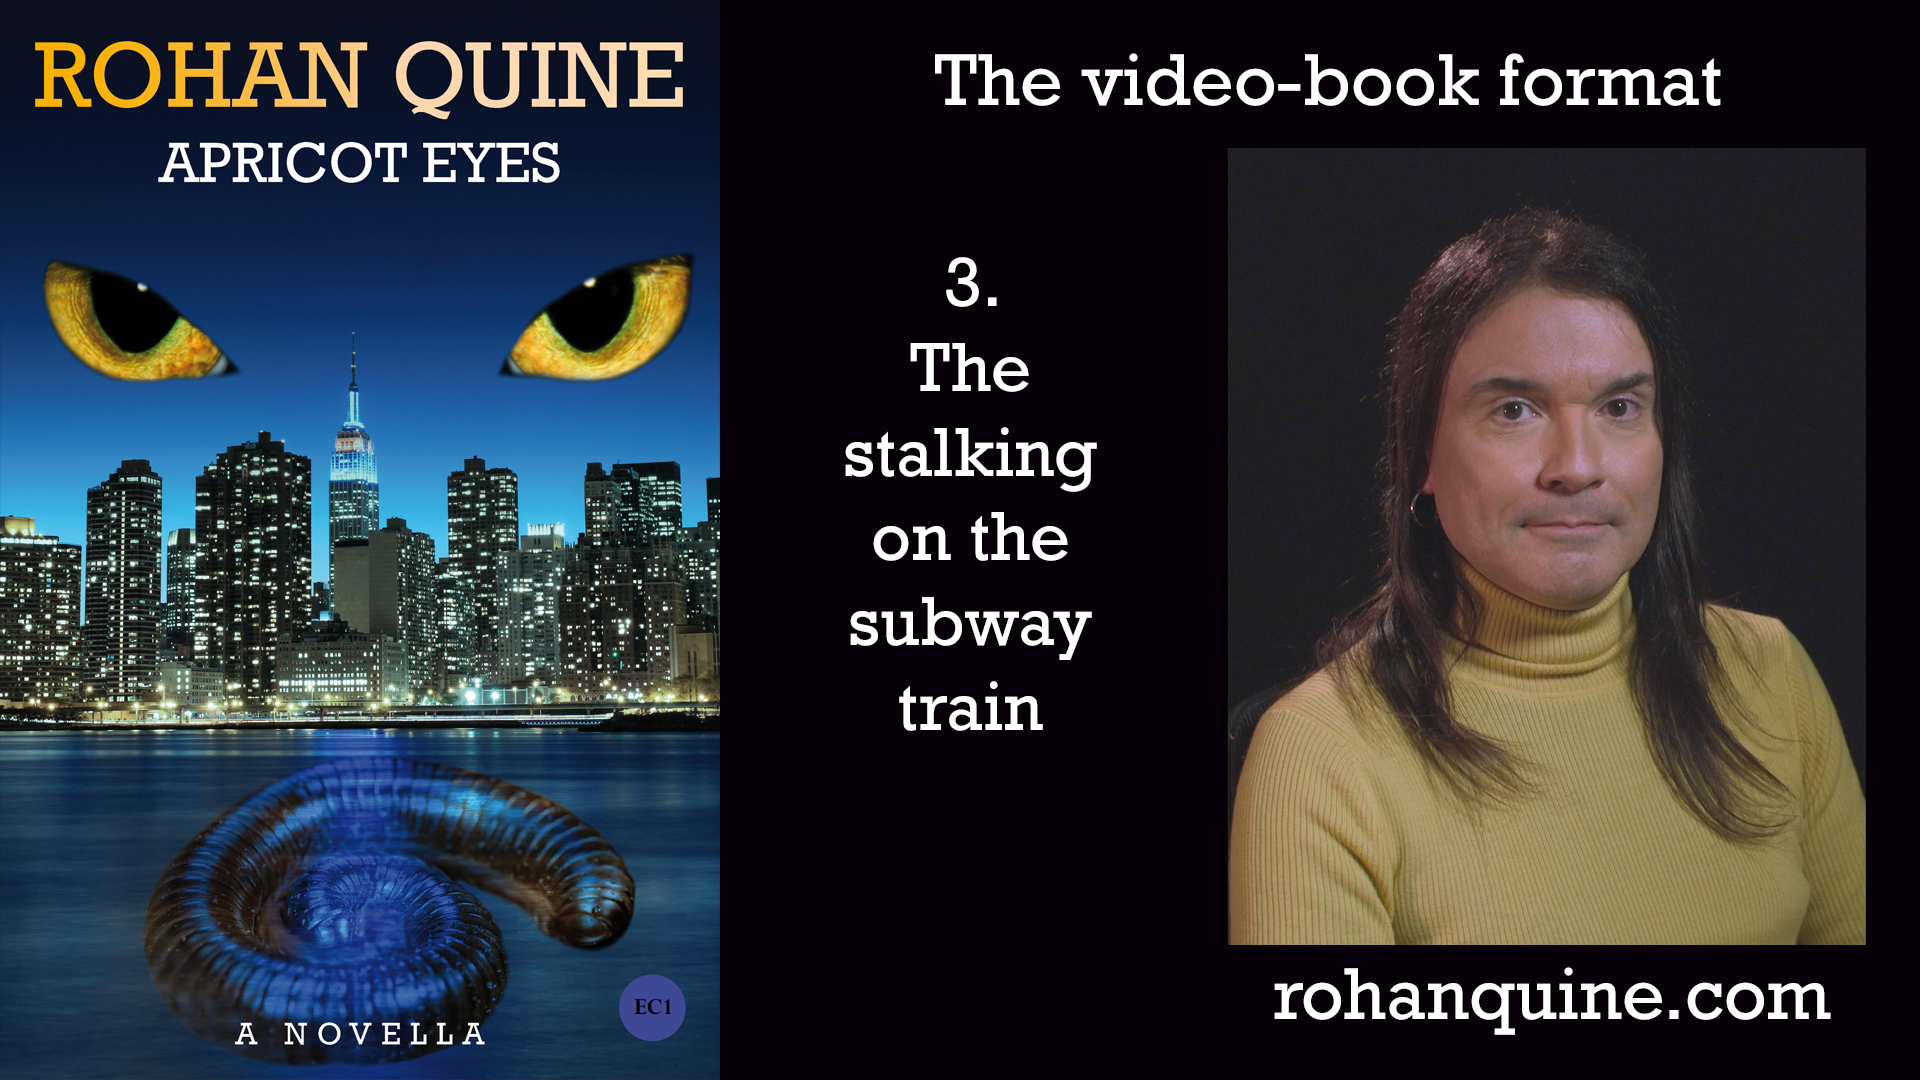 APRICOT EYES by Rohan Quine - video-book format - chapter 3